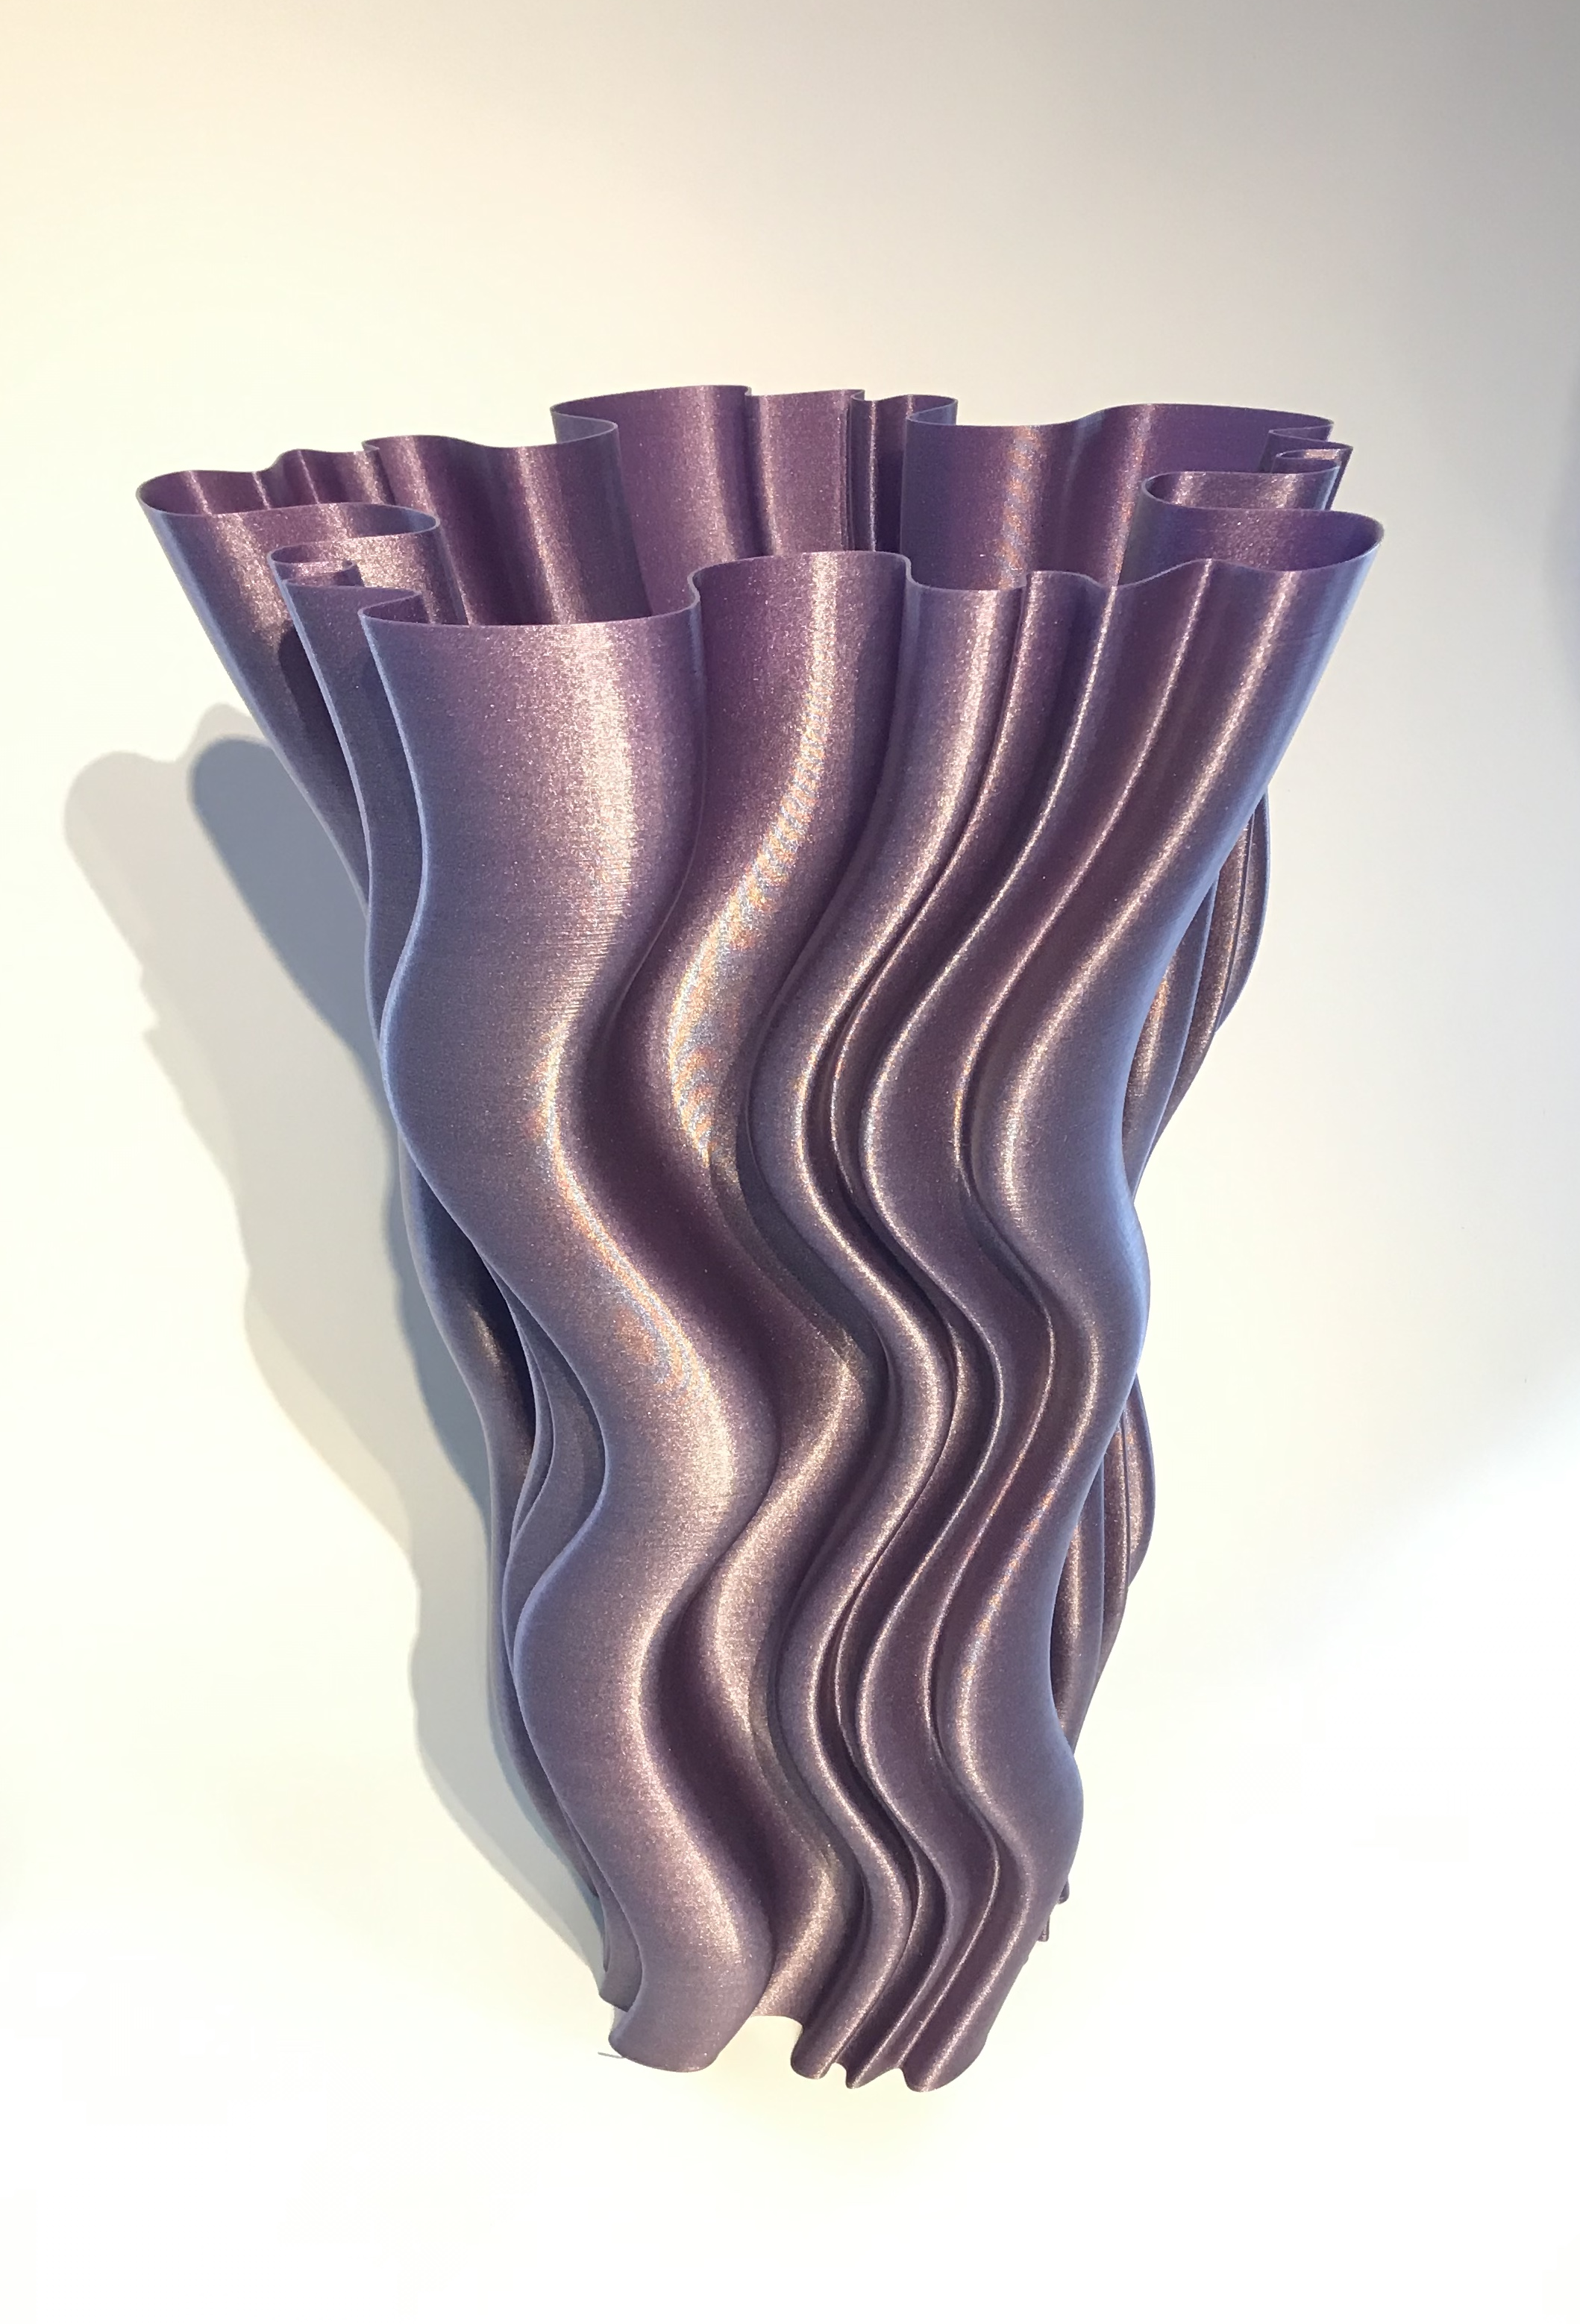 IMG_6195.jpg Download free STL file Super wavy vase • 3D printing object, Brithawkes